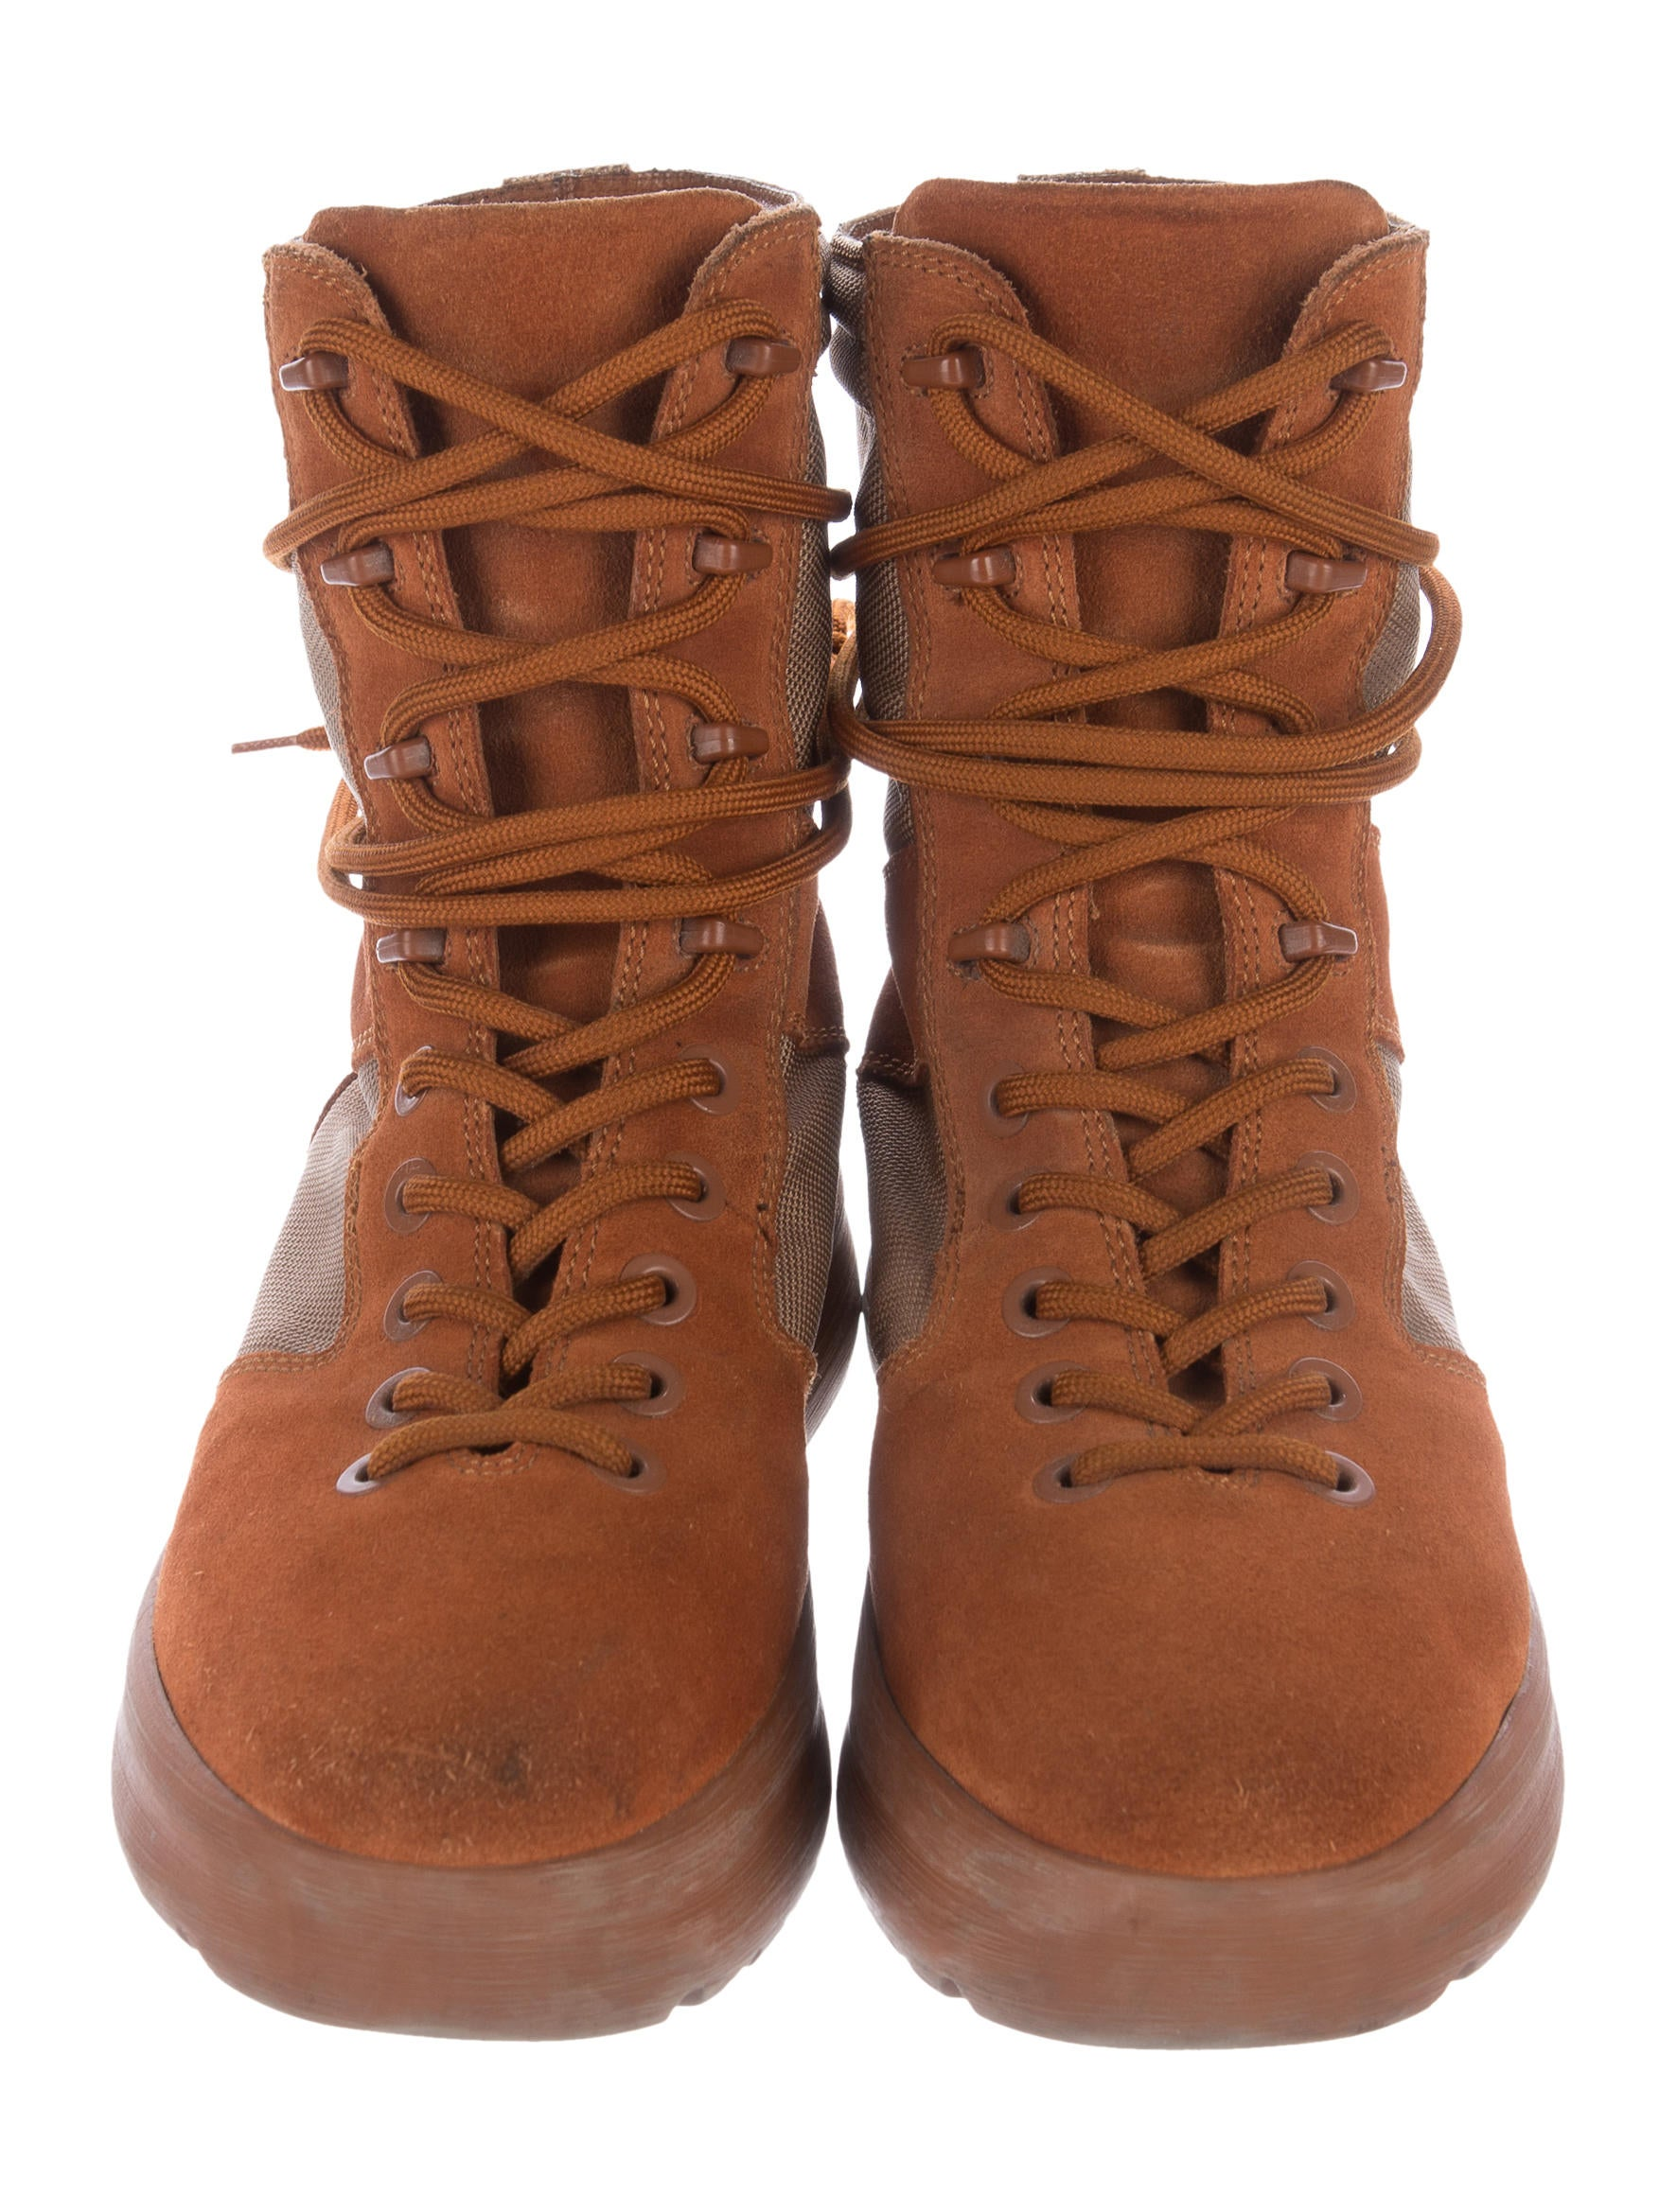 yeezy season 3 military boots review